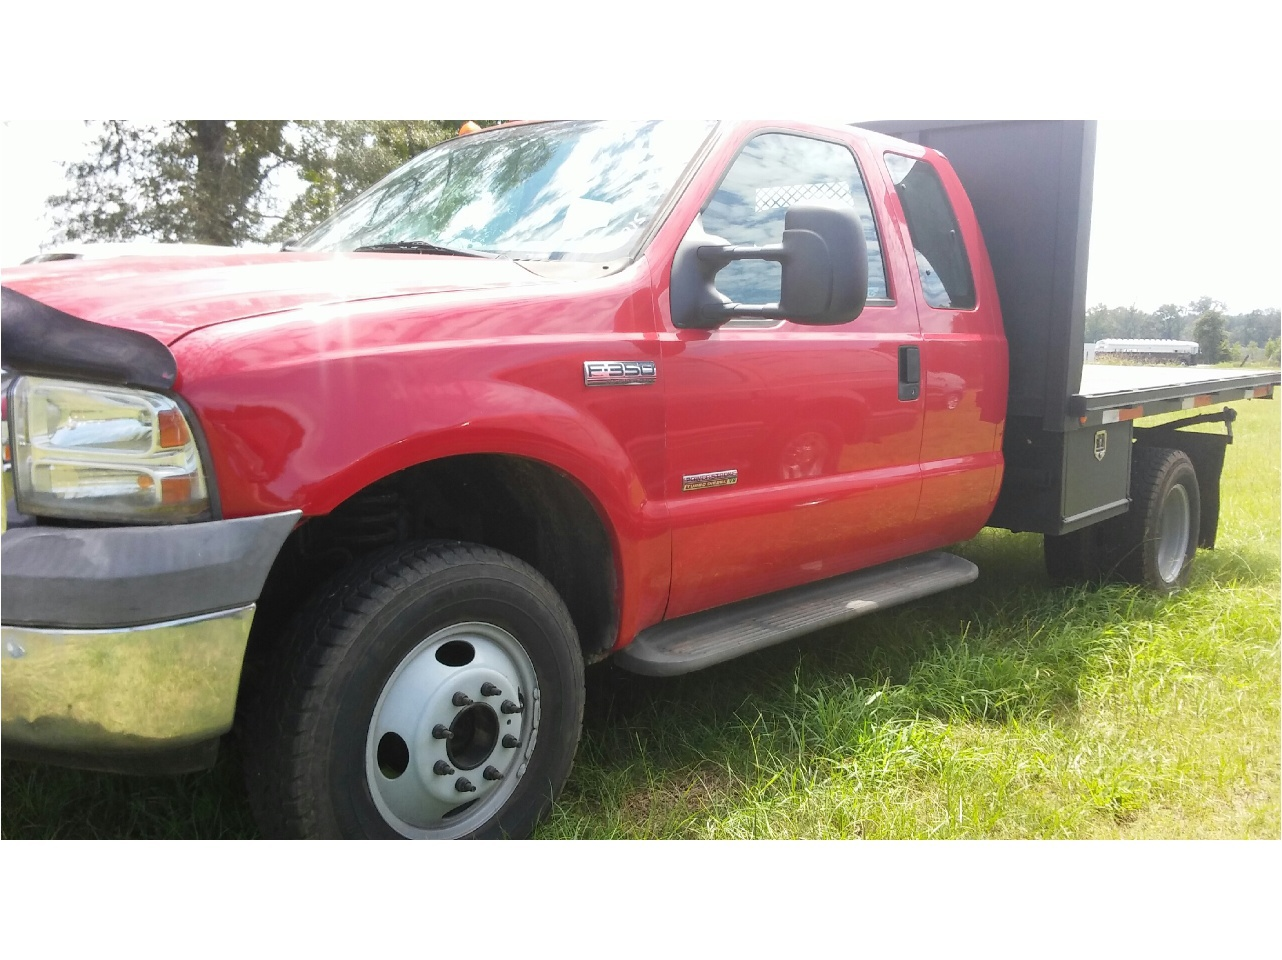 Jm Wood Auction Co Inc September 2017 Forestree Page 4 1954 Ford Dump Truck 2005 F350 Xlt